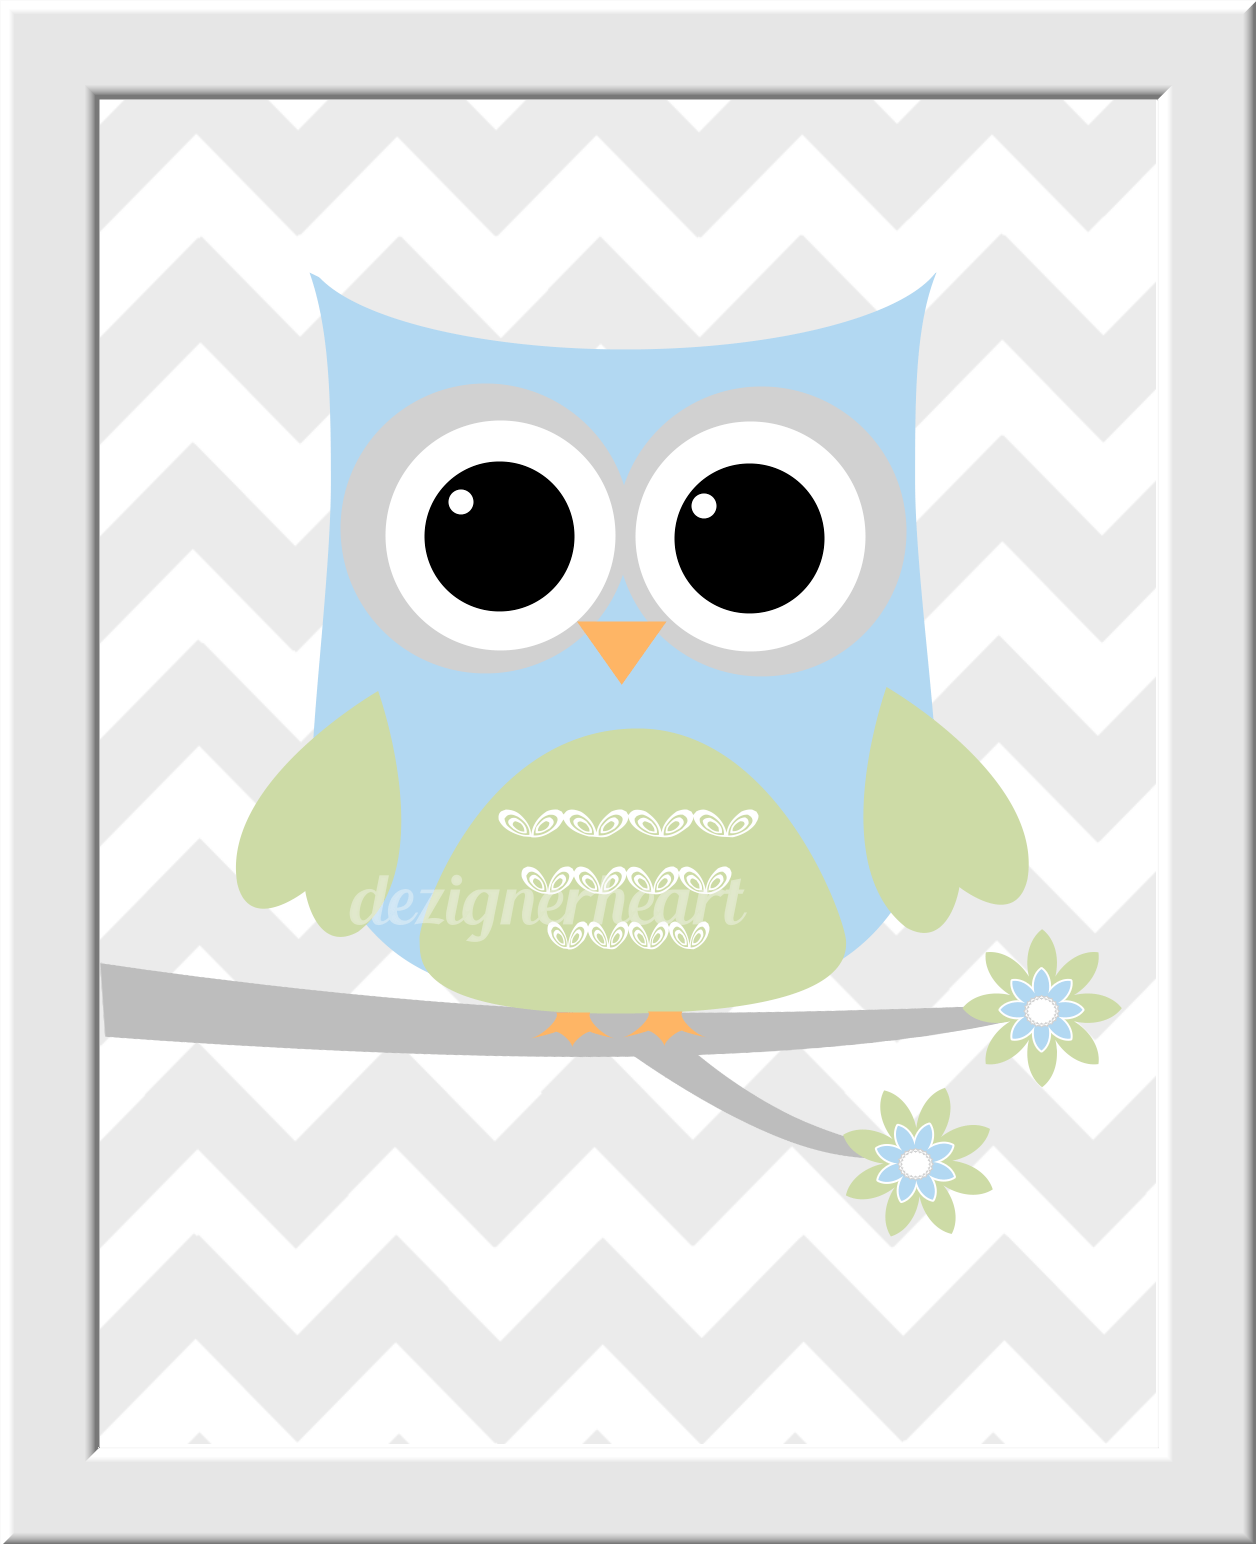 Nursery Prints Girl Twins Baby Nursery Wall Art Baby Girl Baby Boy Owls Twice The Fun Love Baby Girl Nursery Prints Twins Nursery Decor Owl Decor Pink Gray Grey Chevron